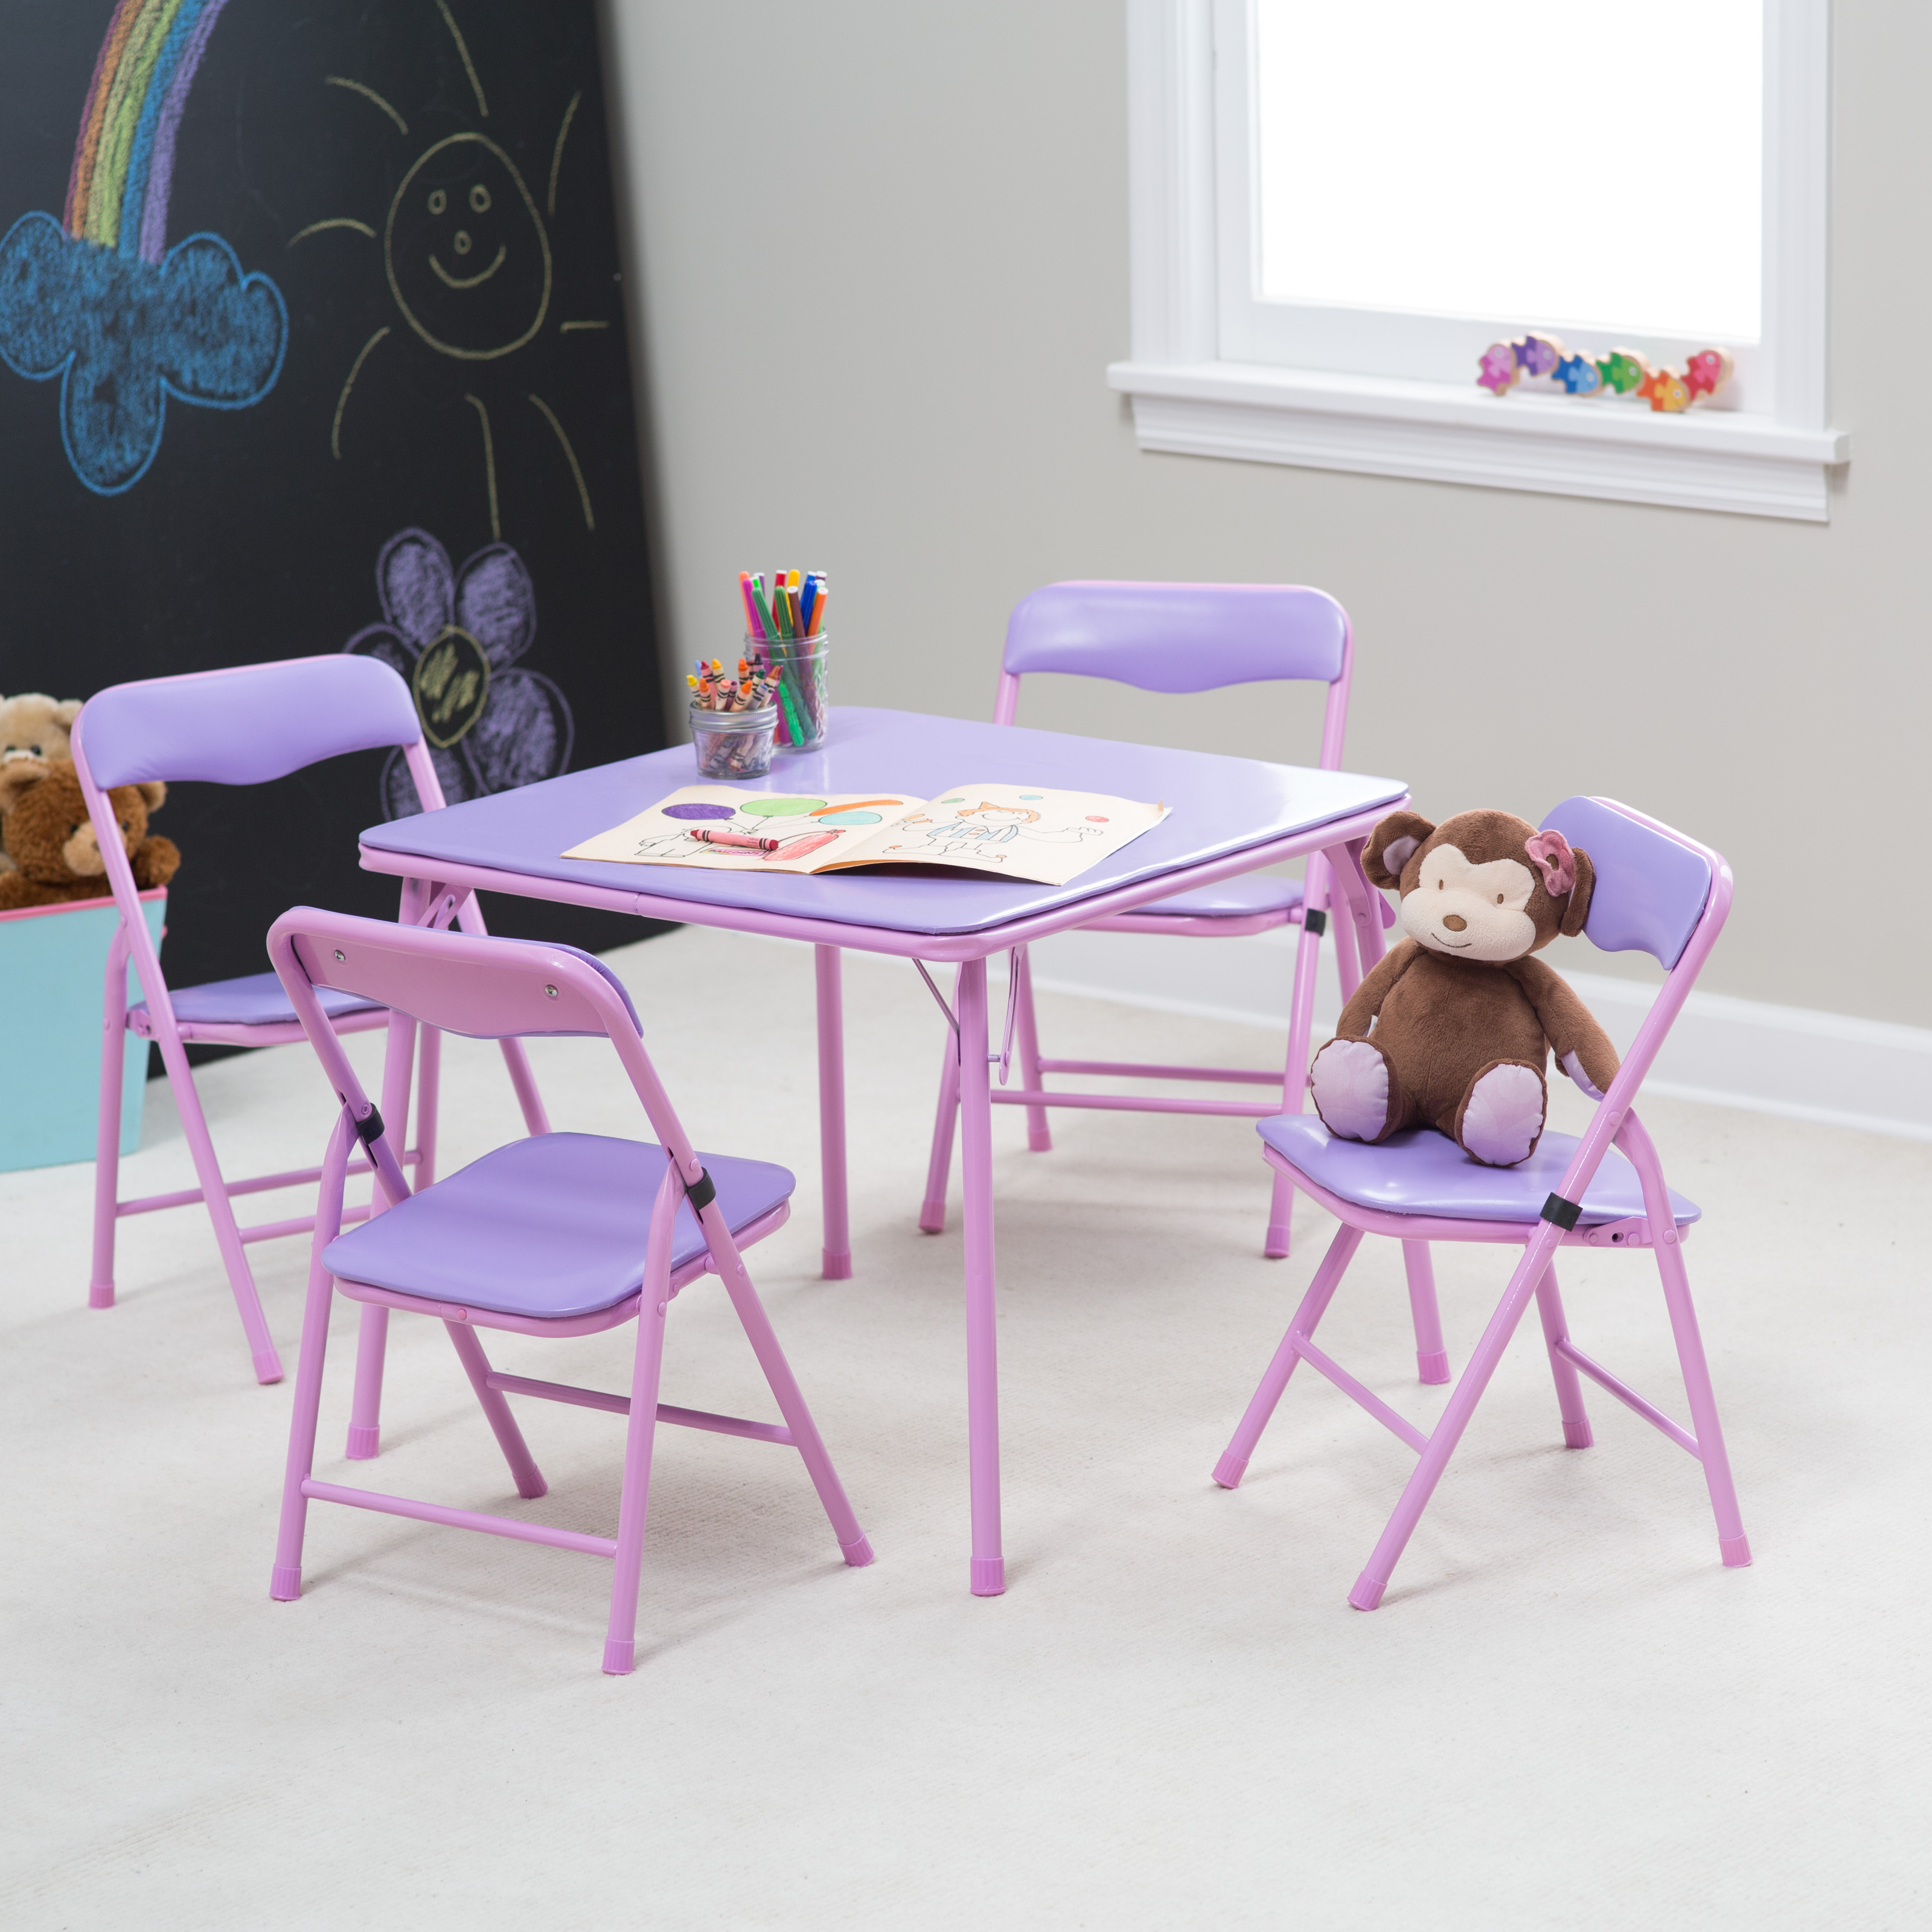 Showtime Childrens Folding Table and Chair Set Kids Tables and Chairs at Ha